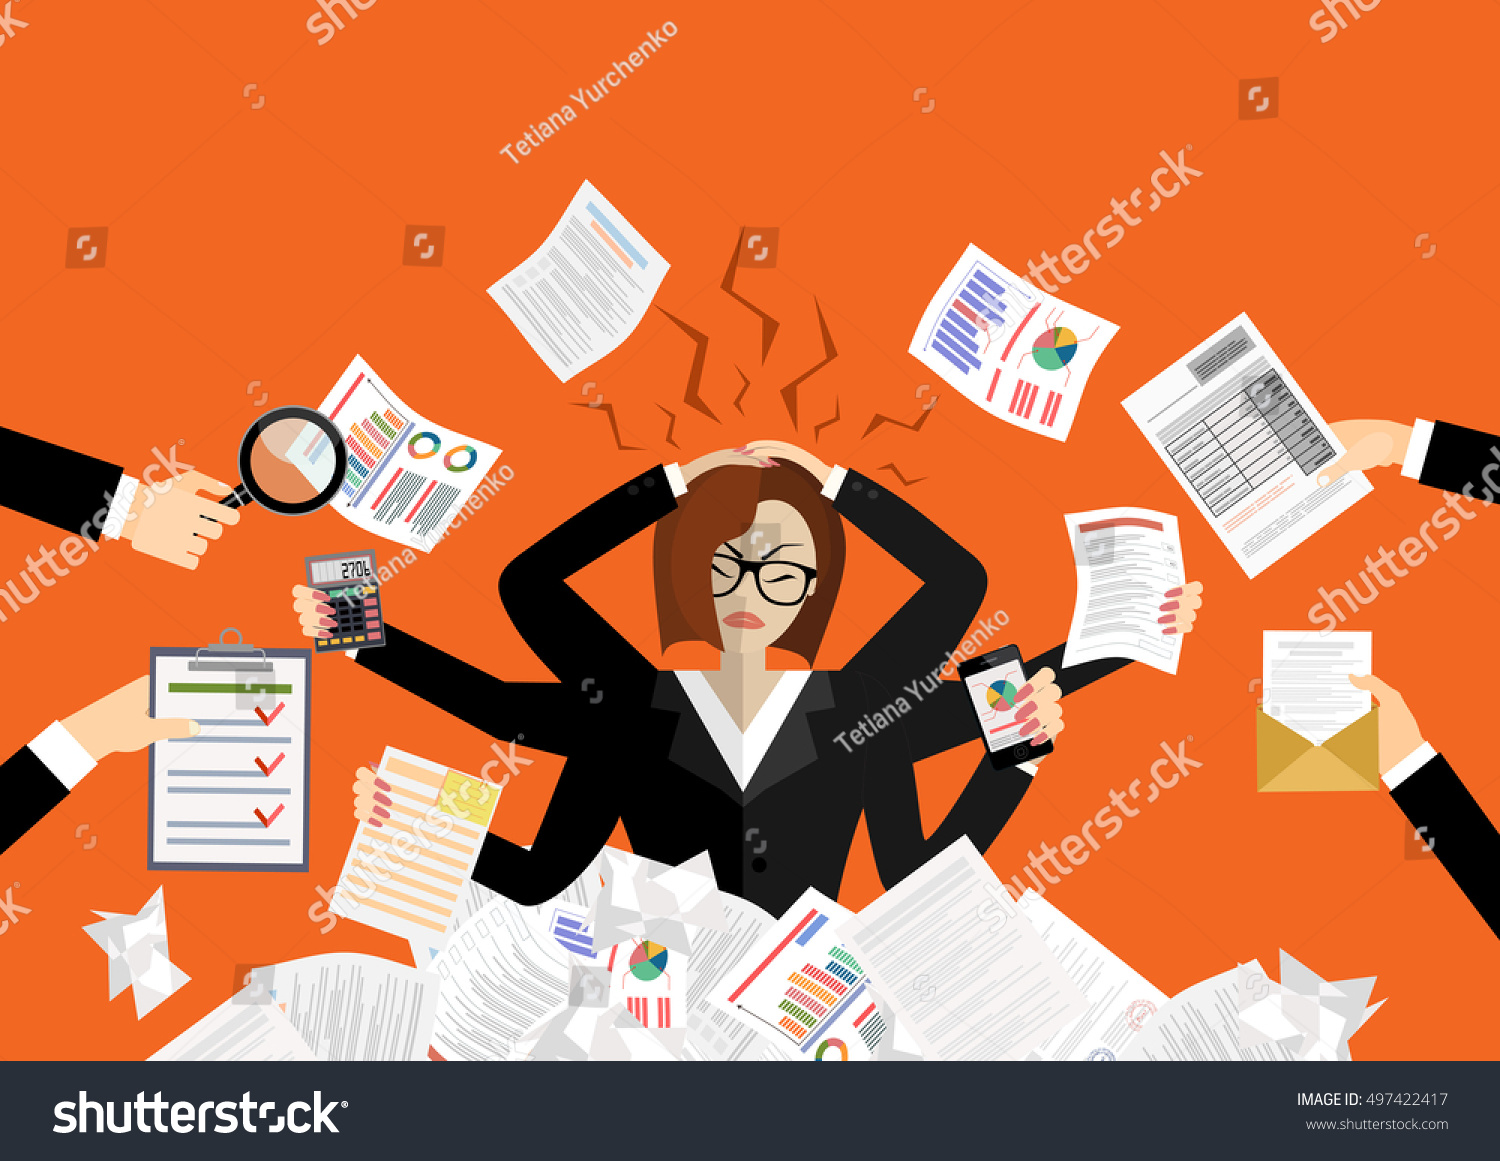 3d White People Overwhelmed Work additionally Ergonomics further Cosmetic Tricks For Busy Business Woman as well Stock Illustration Anorexia Nervosa Explained Illustration Image61231946 likewise 12 Reasons Brain NEEDS Vacation. on office stress cartoons